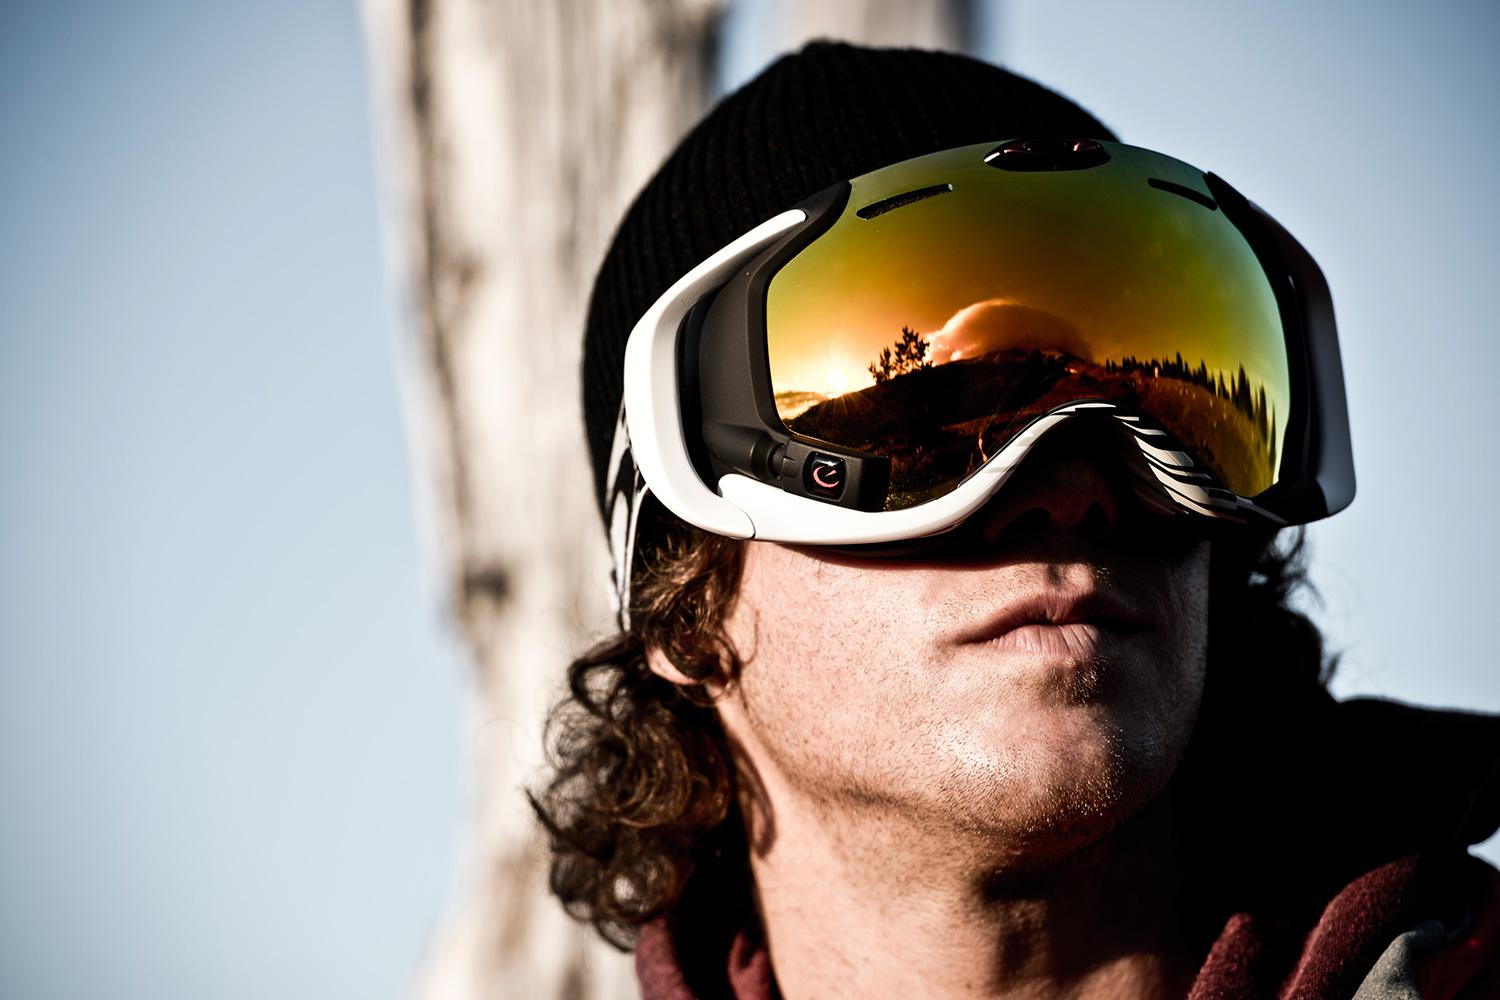 How to choose ski goggles